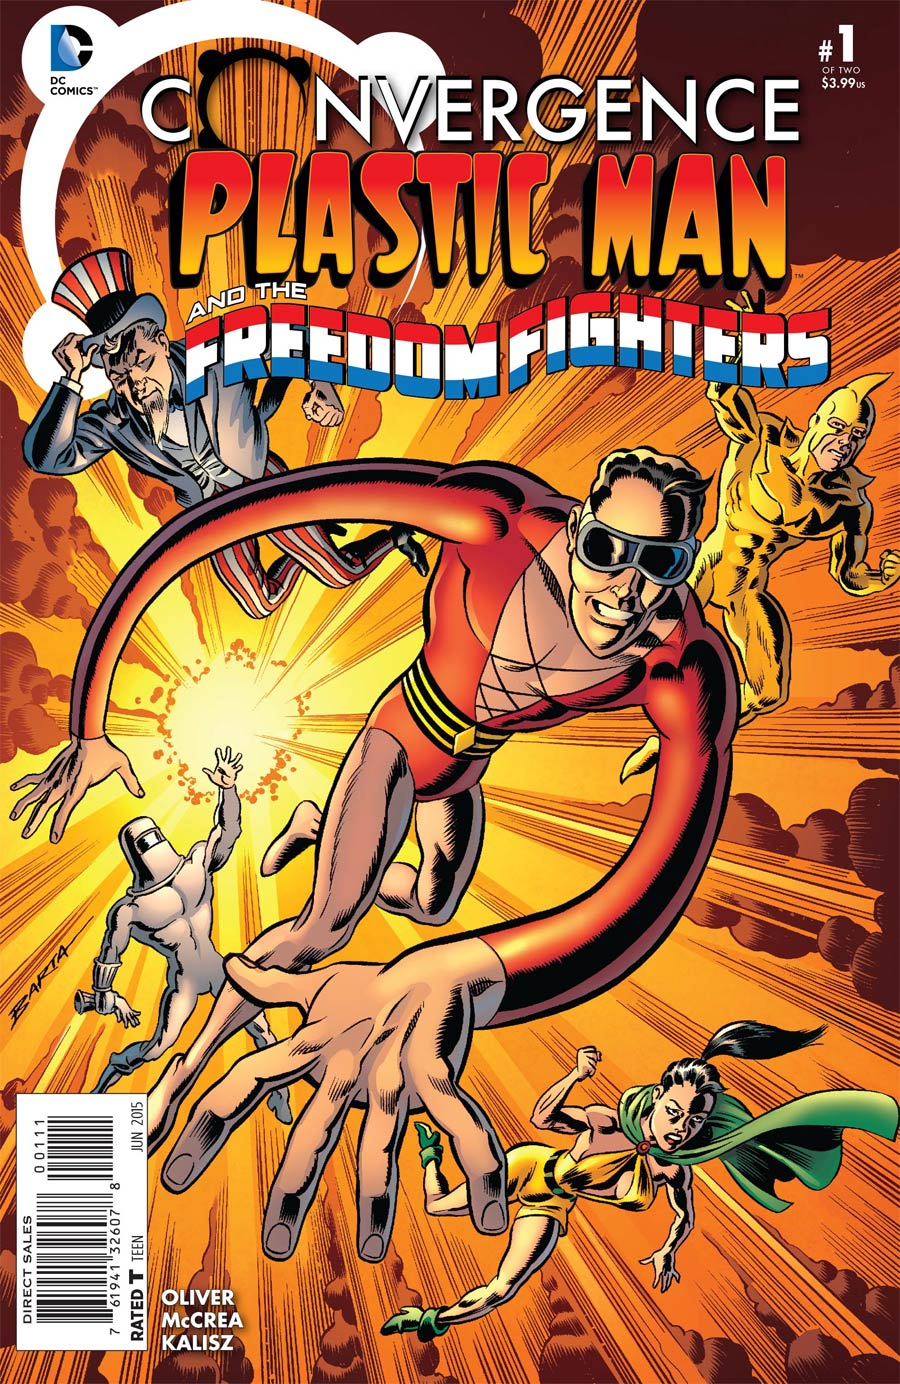 Convergence Plastic Man And The Freedom Fighters #1 Cover A Regular Hilary Barta Cover